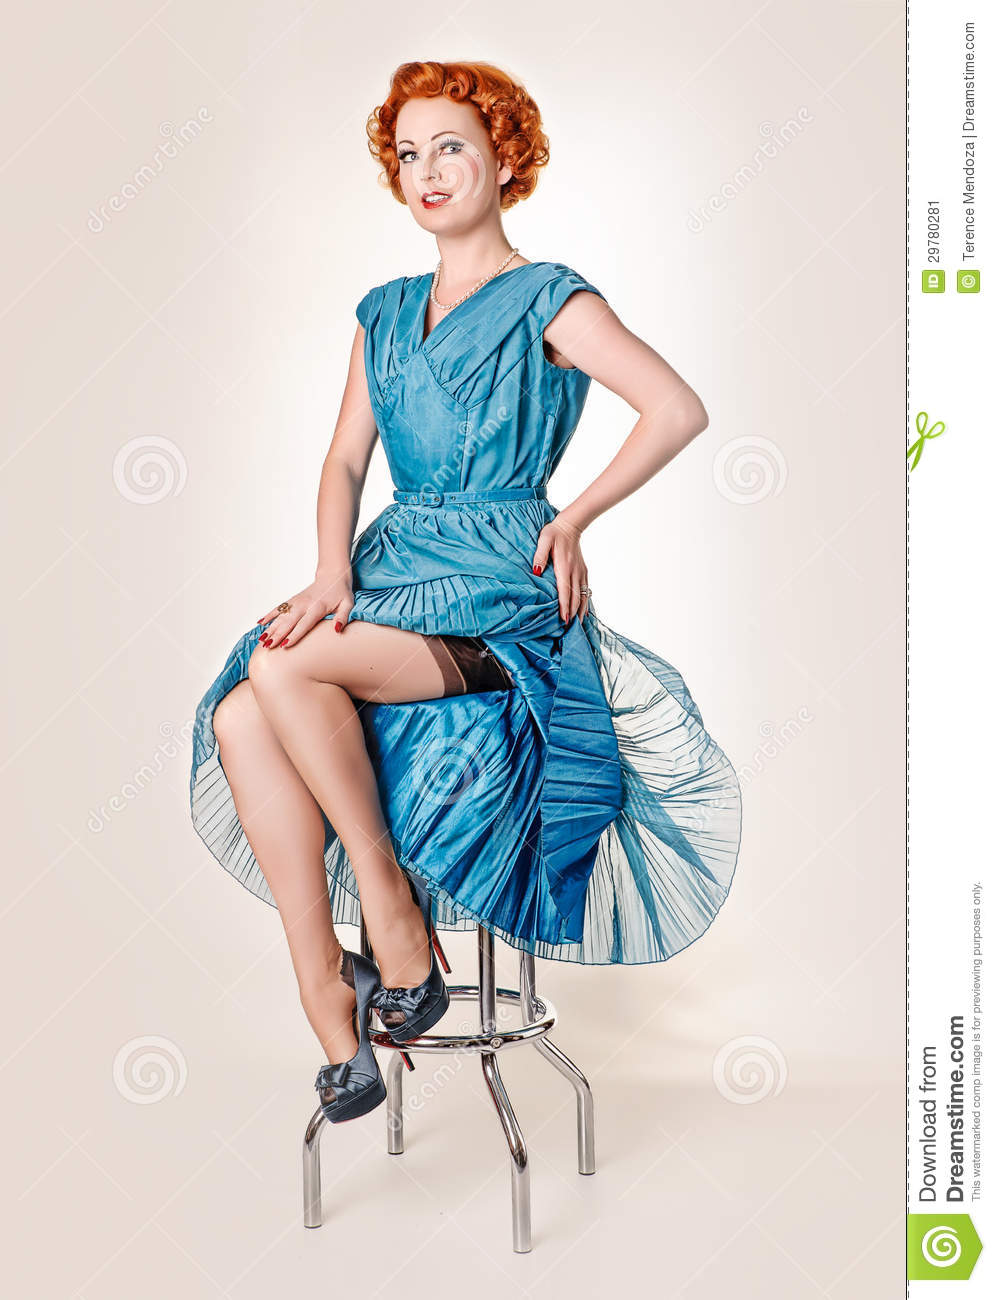 Are not retro vintage redhead not